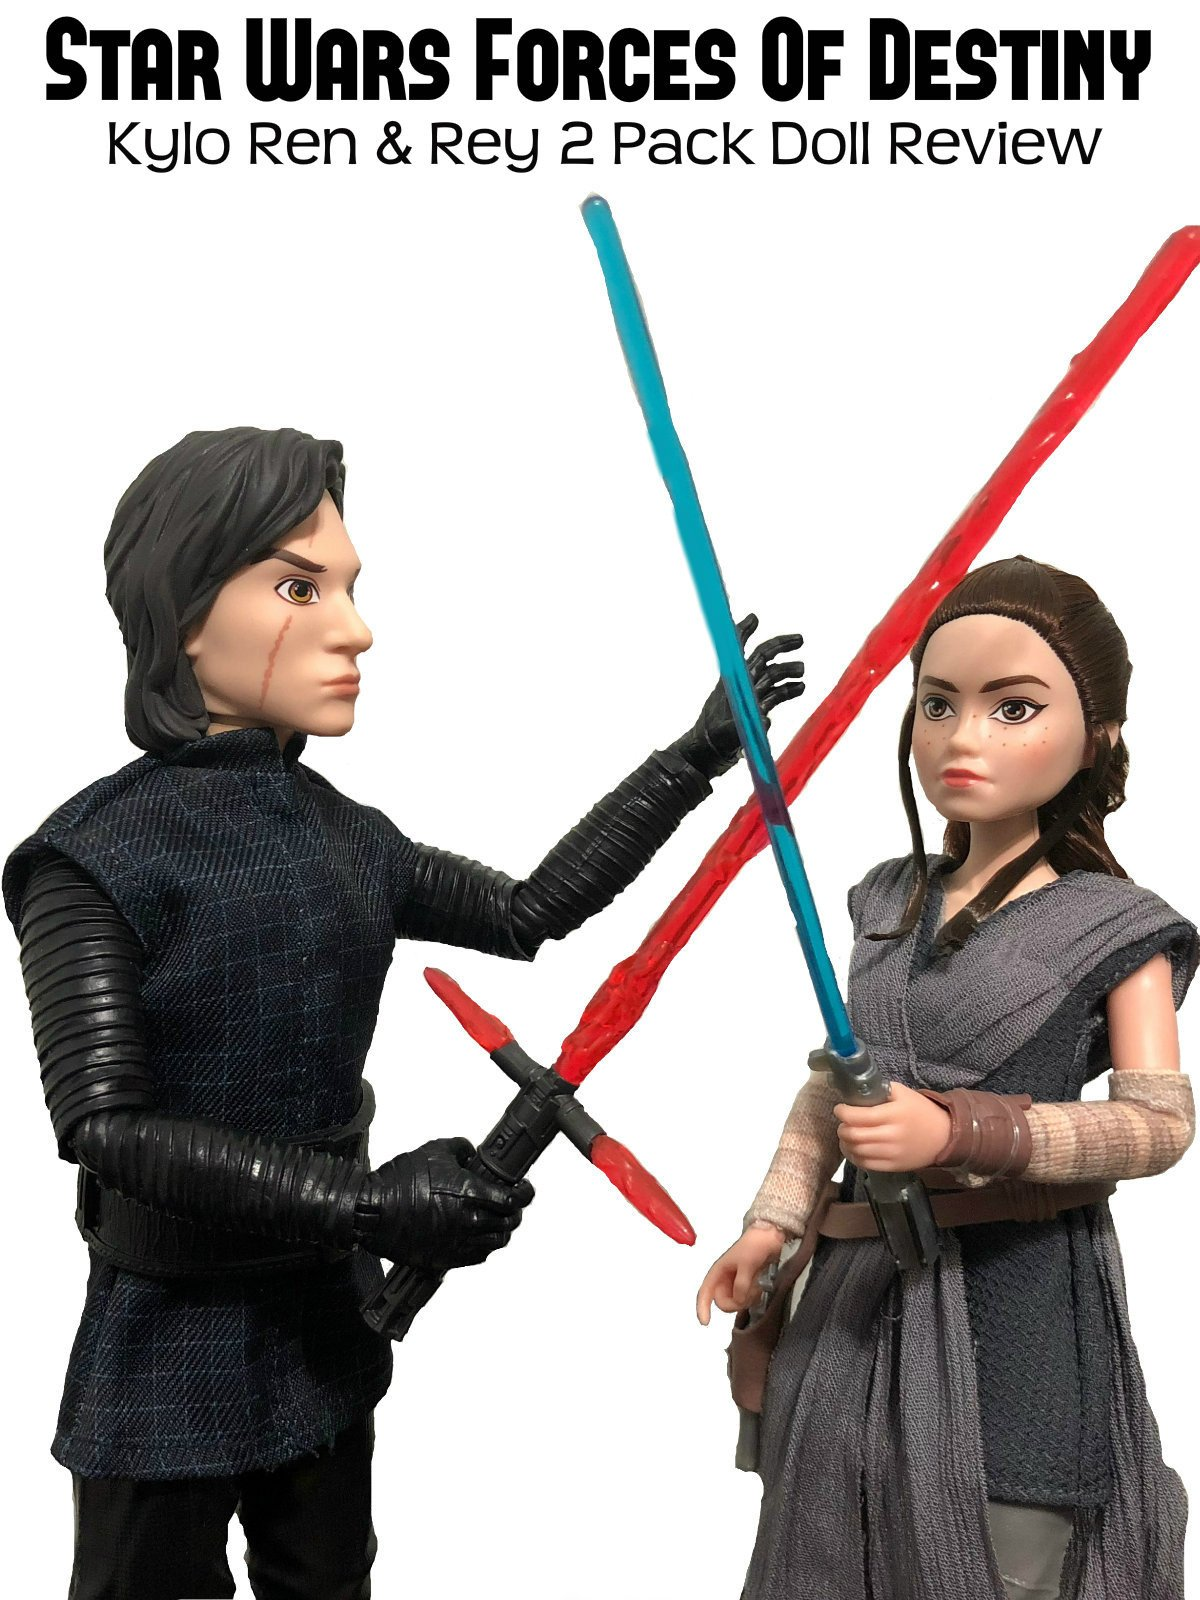 Review: Star Wars Forces Of Destiny Kylo Ren & Rey 2 Pack Doll Review